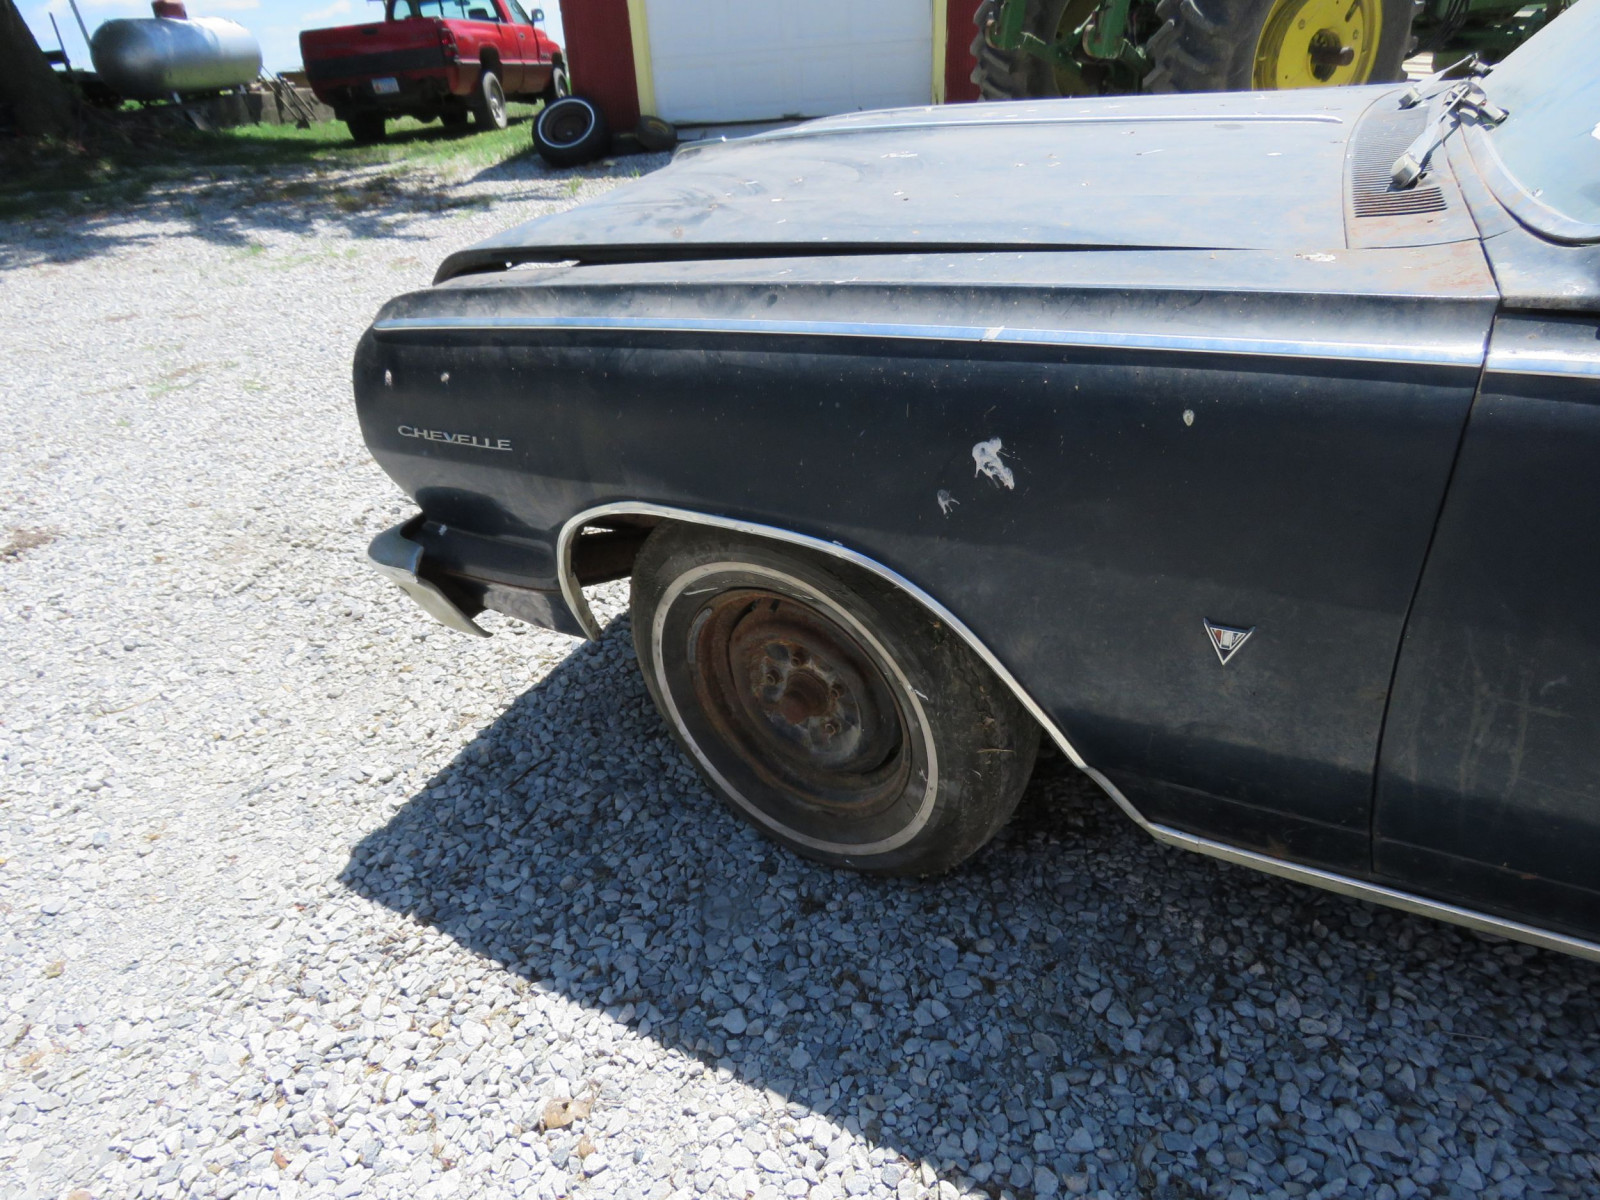 1964 Chevrolet Chevelle SS Convertible - Image 17